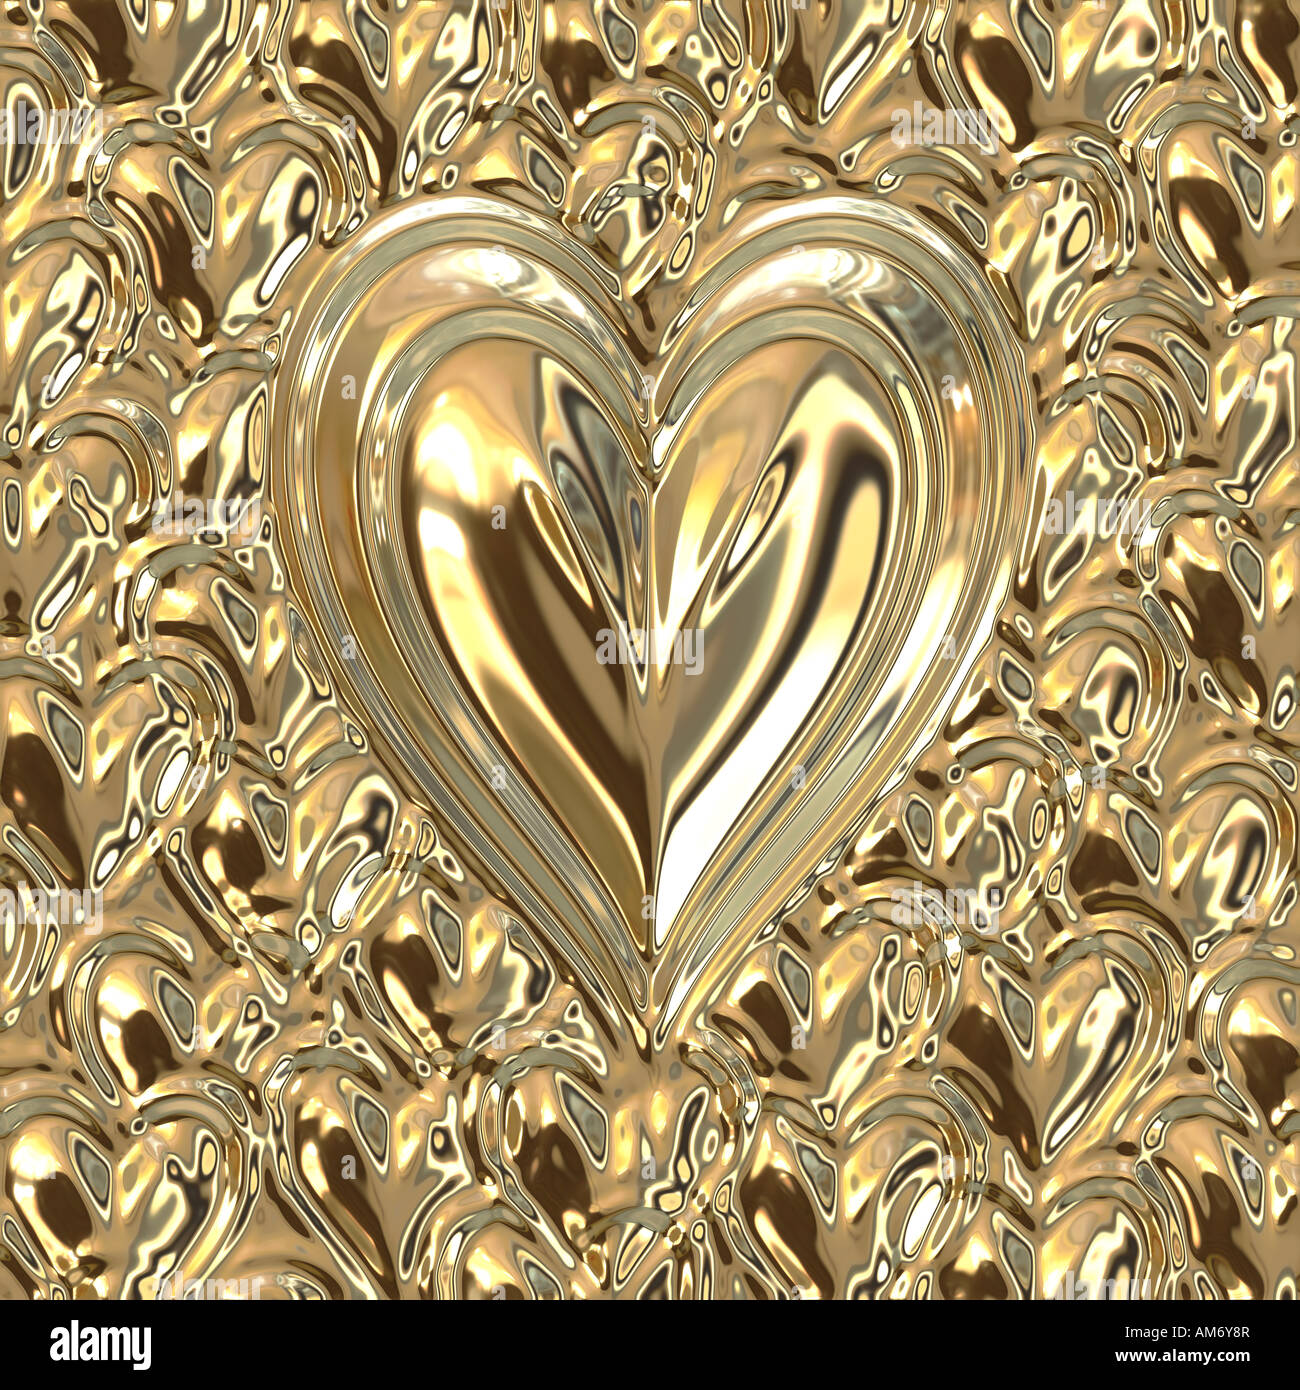 big bright golden metallic heart on small gold hearts - Stock Image